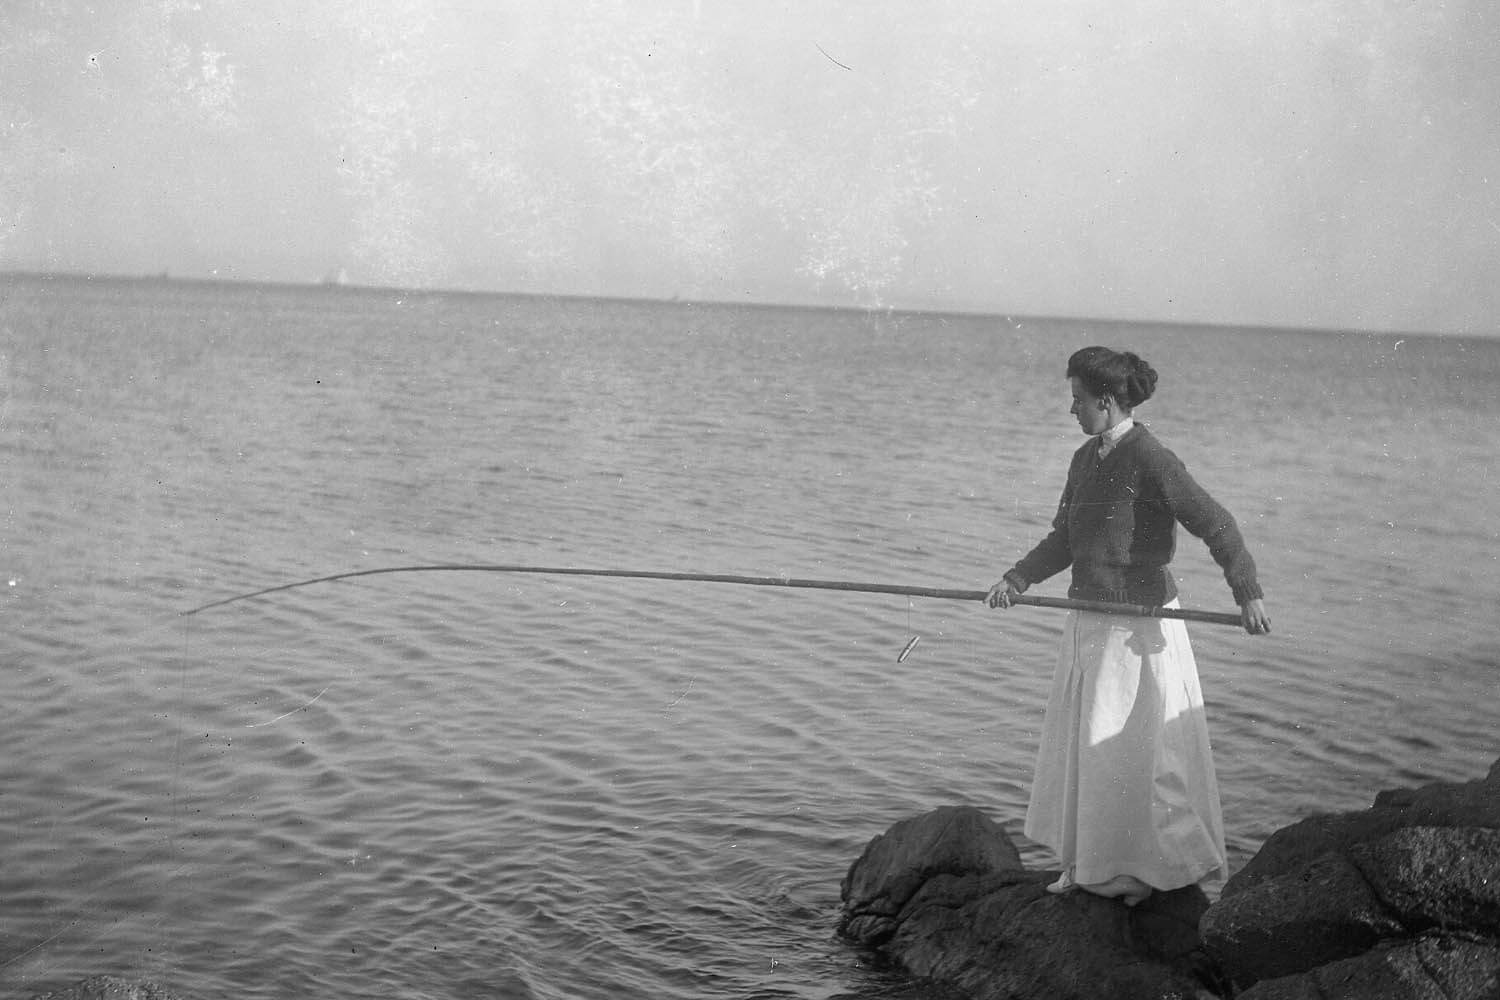 Keeper wives often fished to supplement the family food supply.